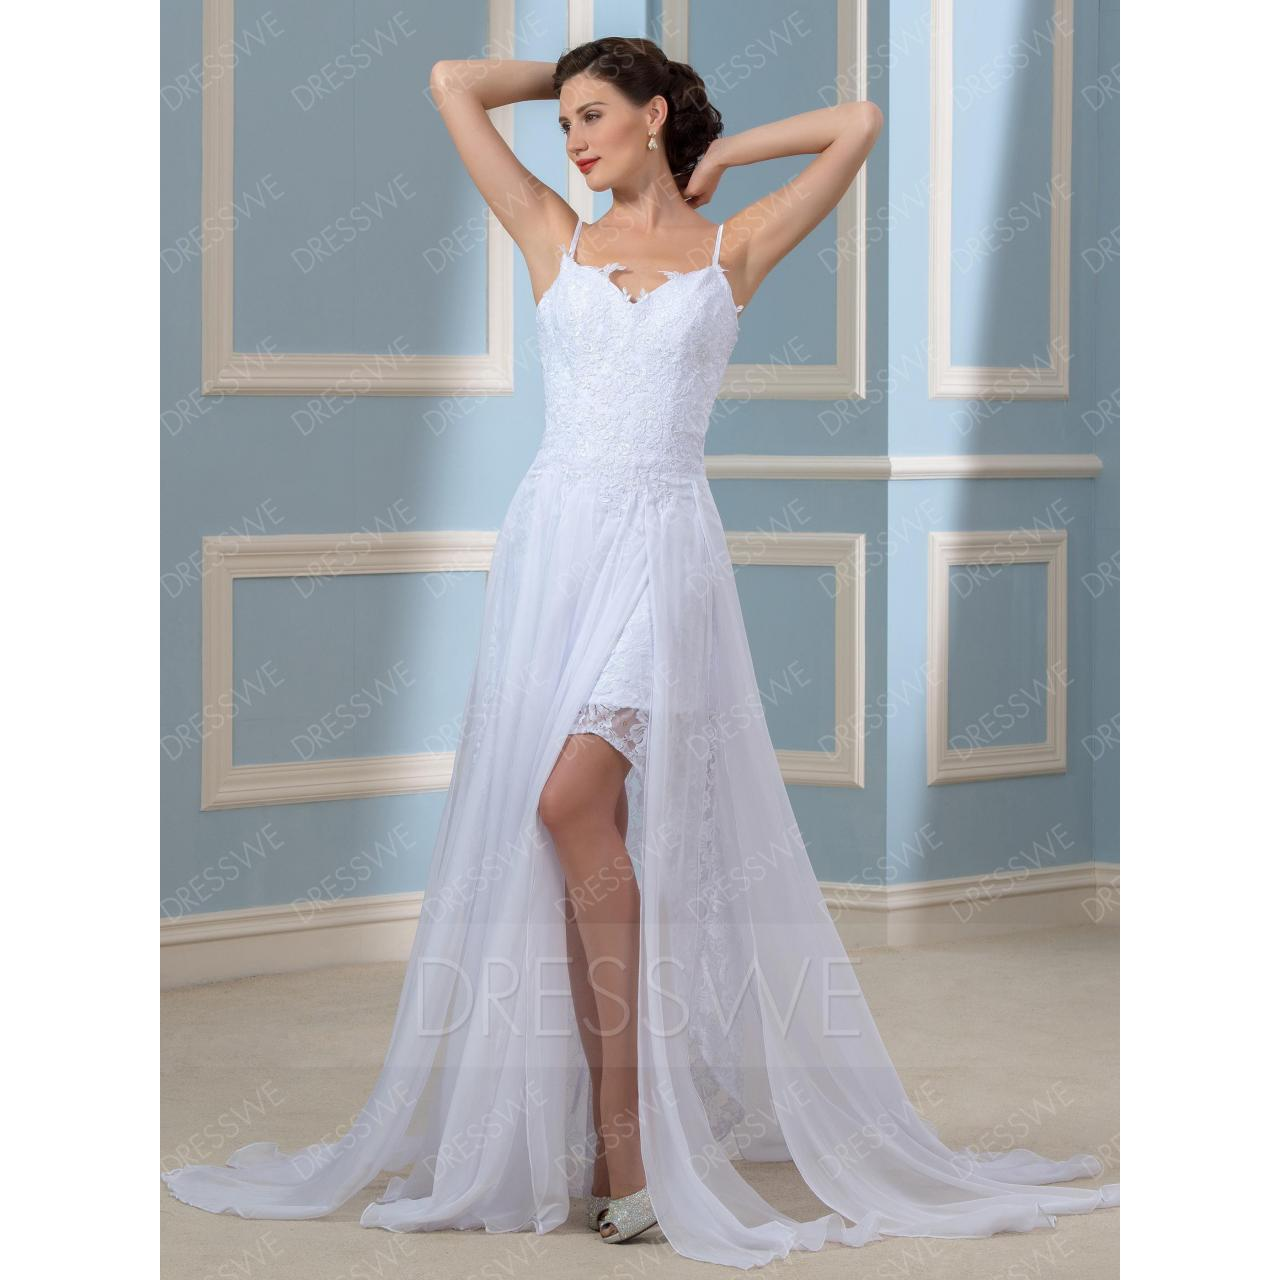 Buy cheap Wedding Dresses ItemCode:11445724 from wholesalers